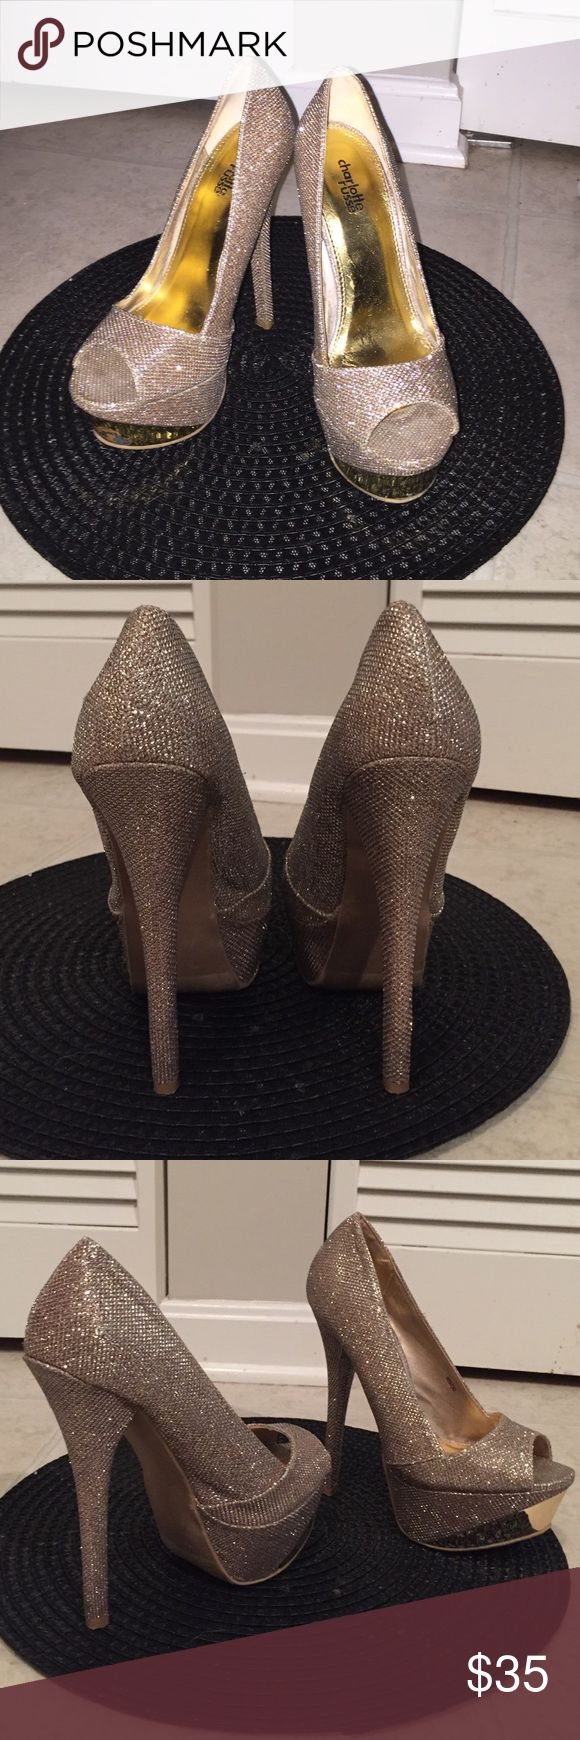 7inch Glitter sparkly pumps! Slightly used GOLD sparkly pumps! Great for New Years or just a flirty night on the town! Very tight, fits more like a 6.5 🙂 Charlotte Ronson Shoes Platforms